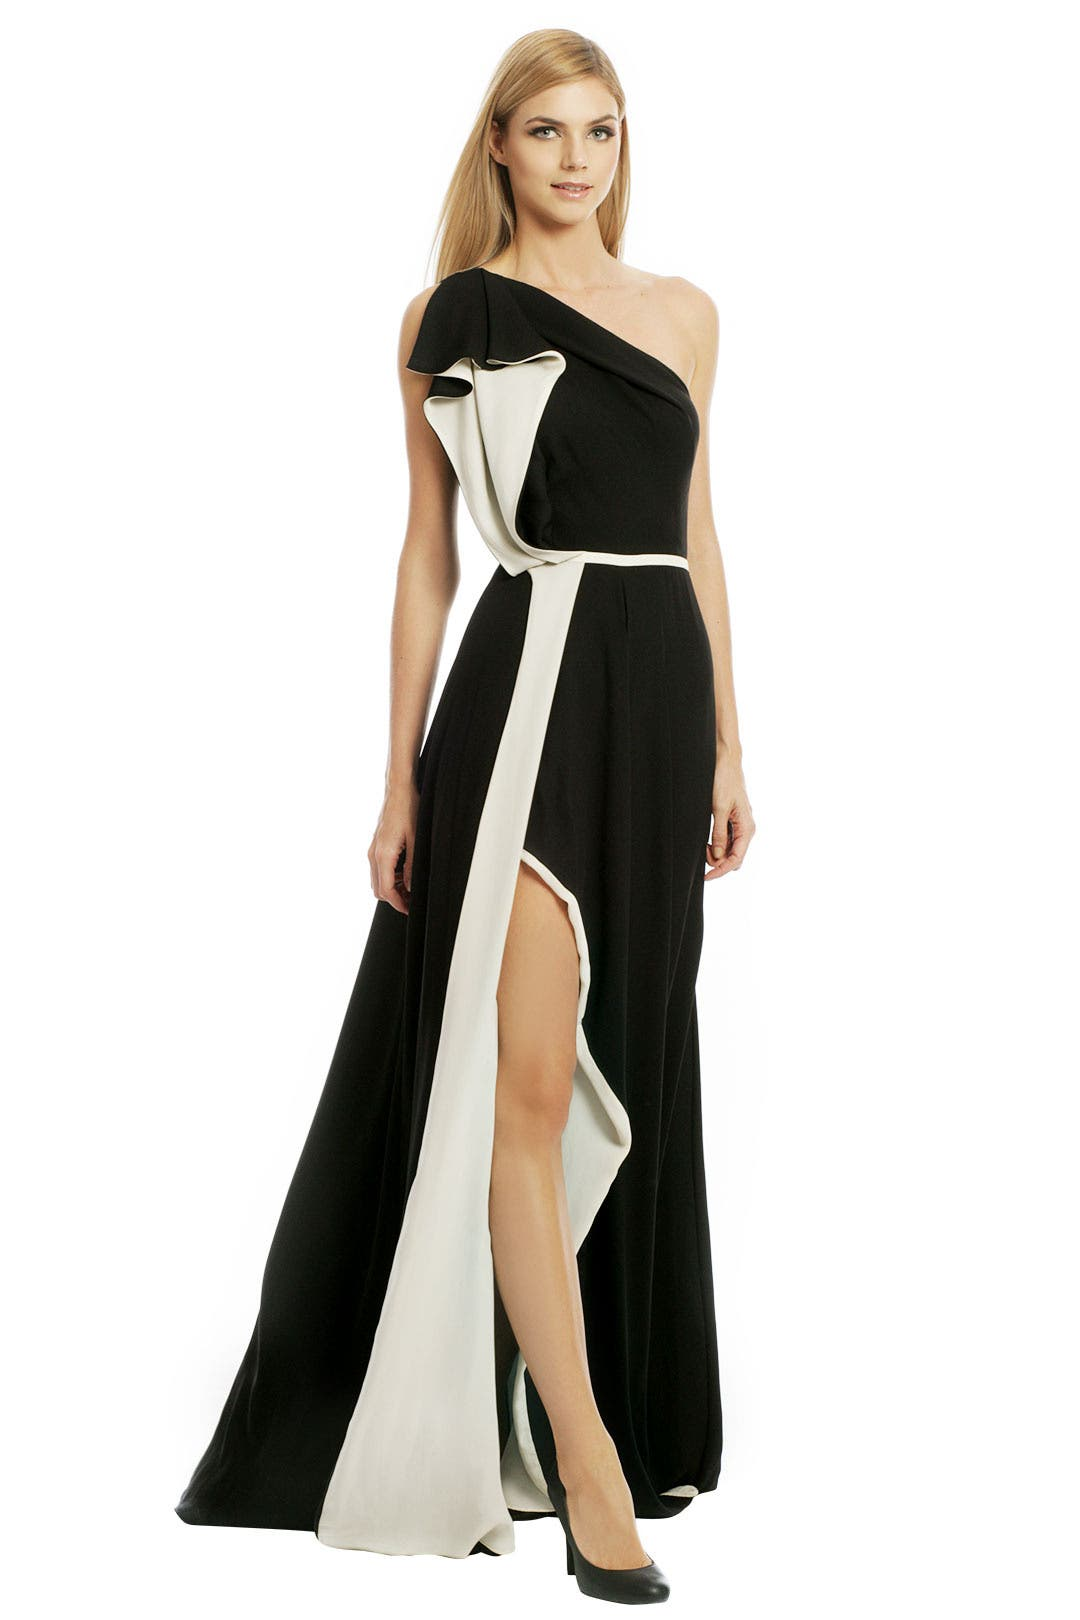 Pleasing To The Eye Gown by Halston Heritage for $120 | Rent the Runway